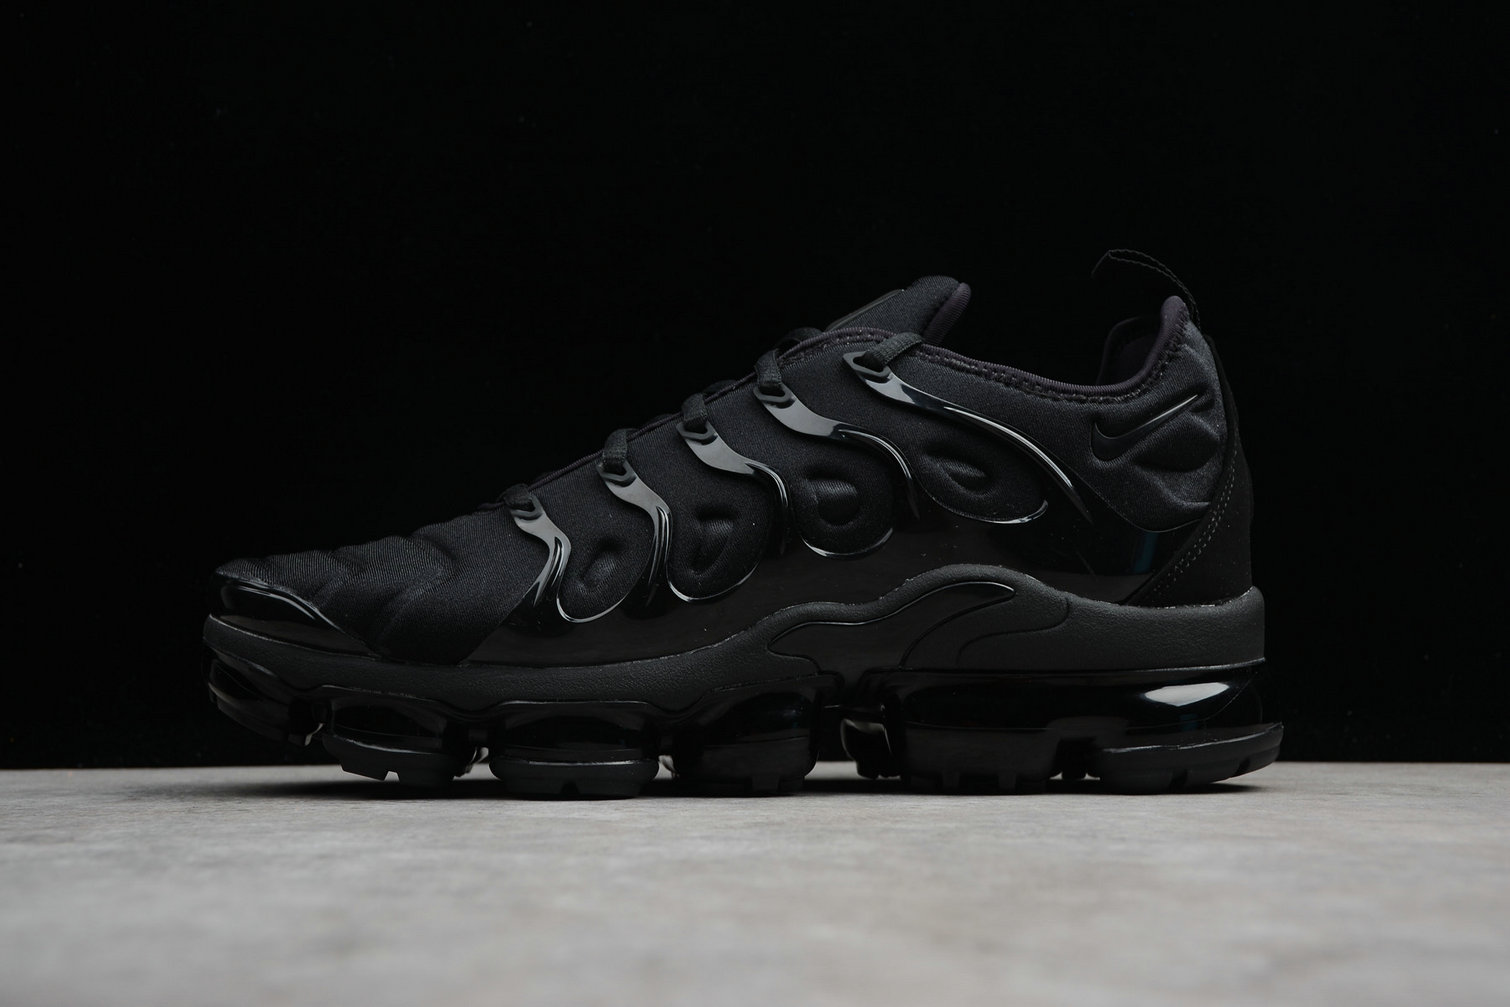 Wholesale Cheap Nike Air VaporMax Plus 924453-004 Black Dark Grey Noir Gris Fince Noir